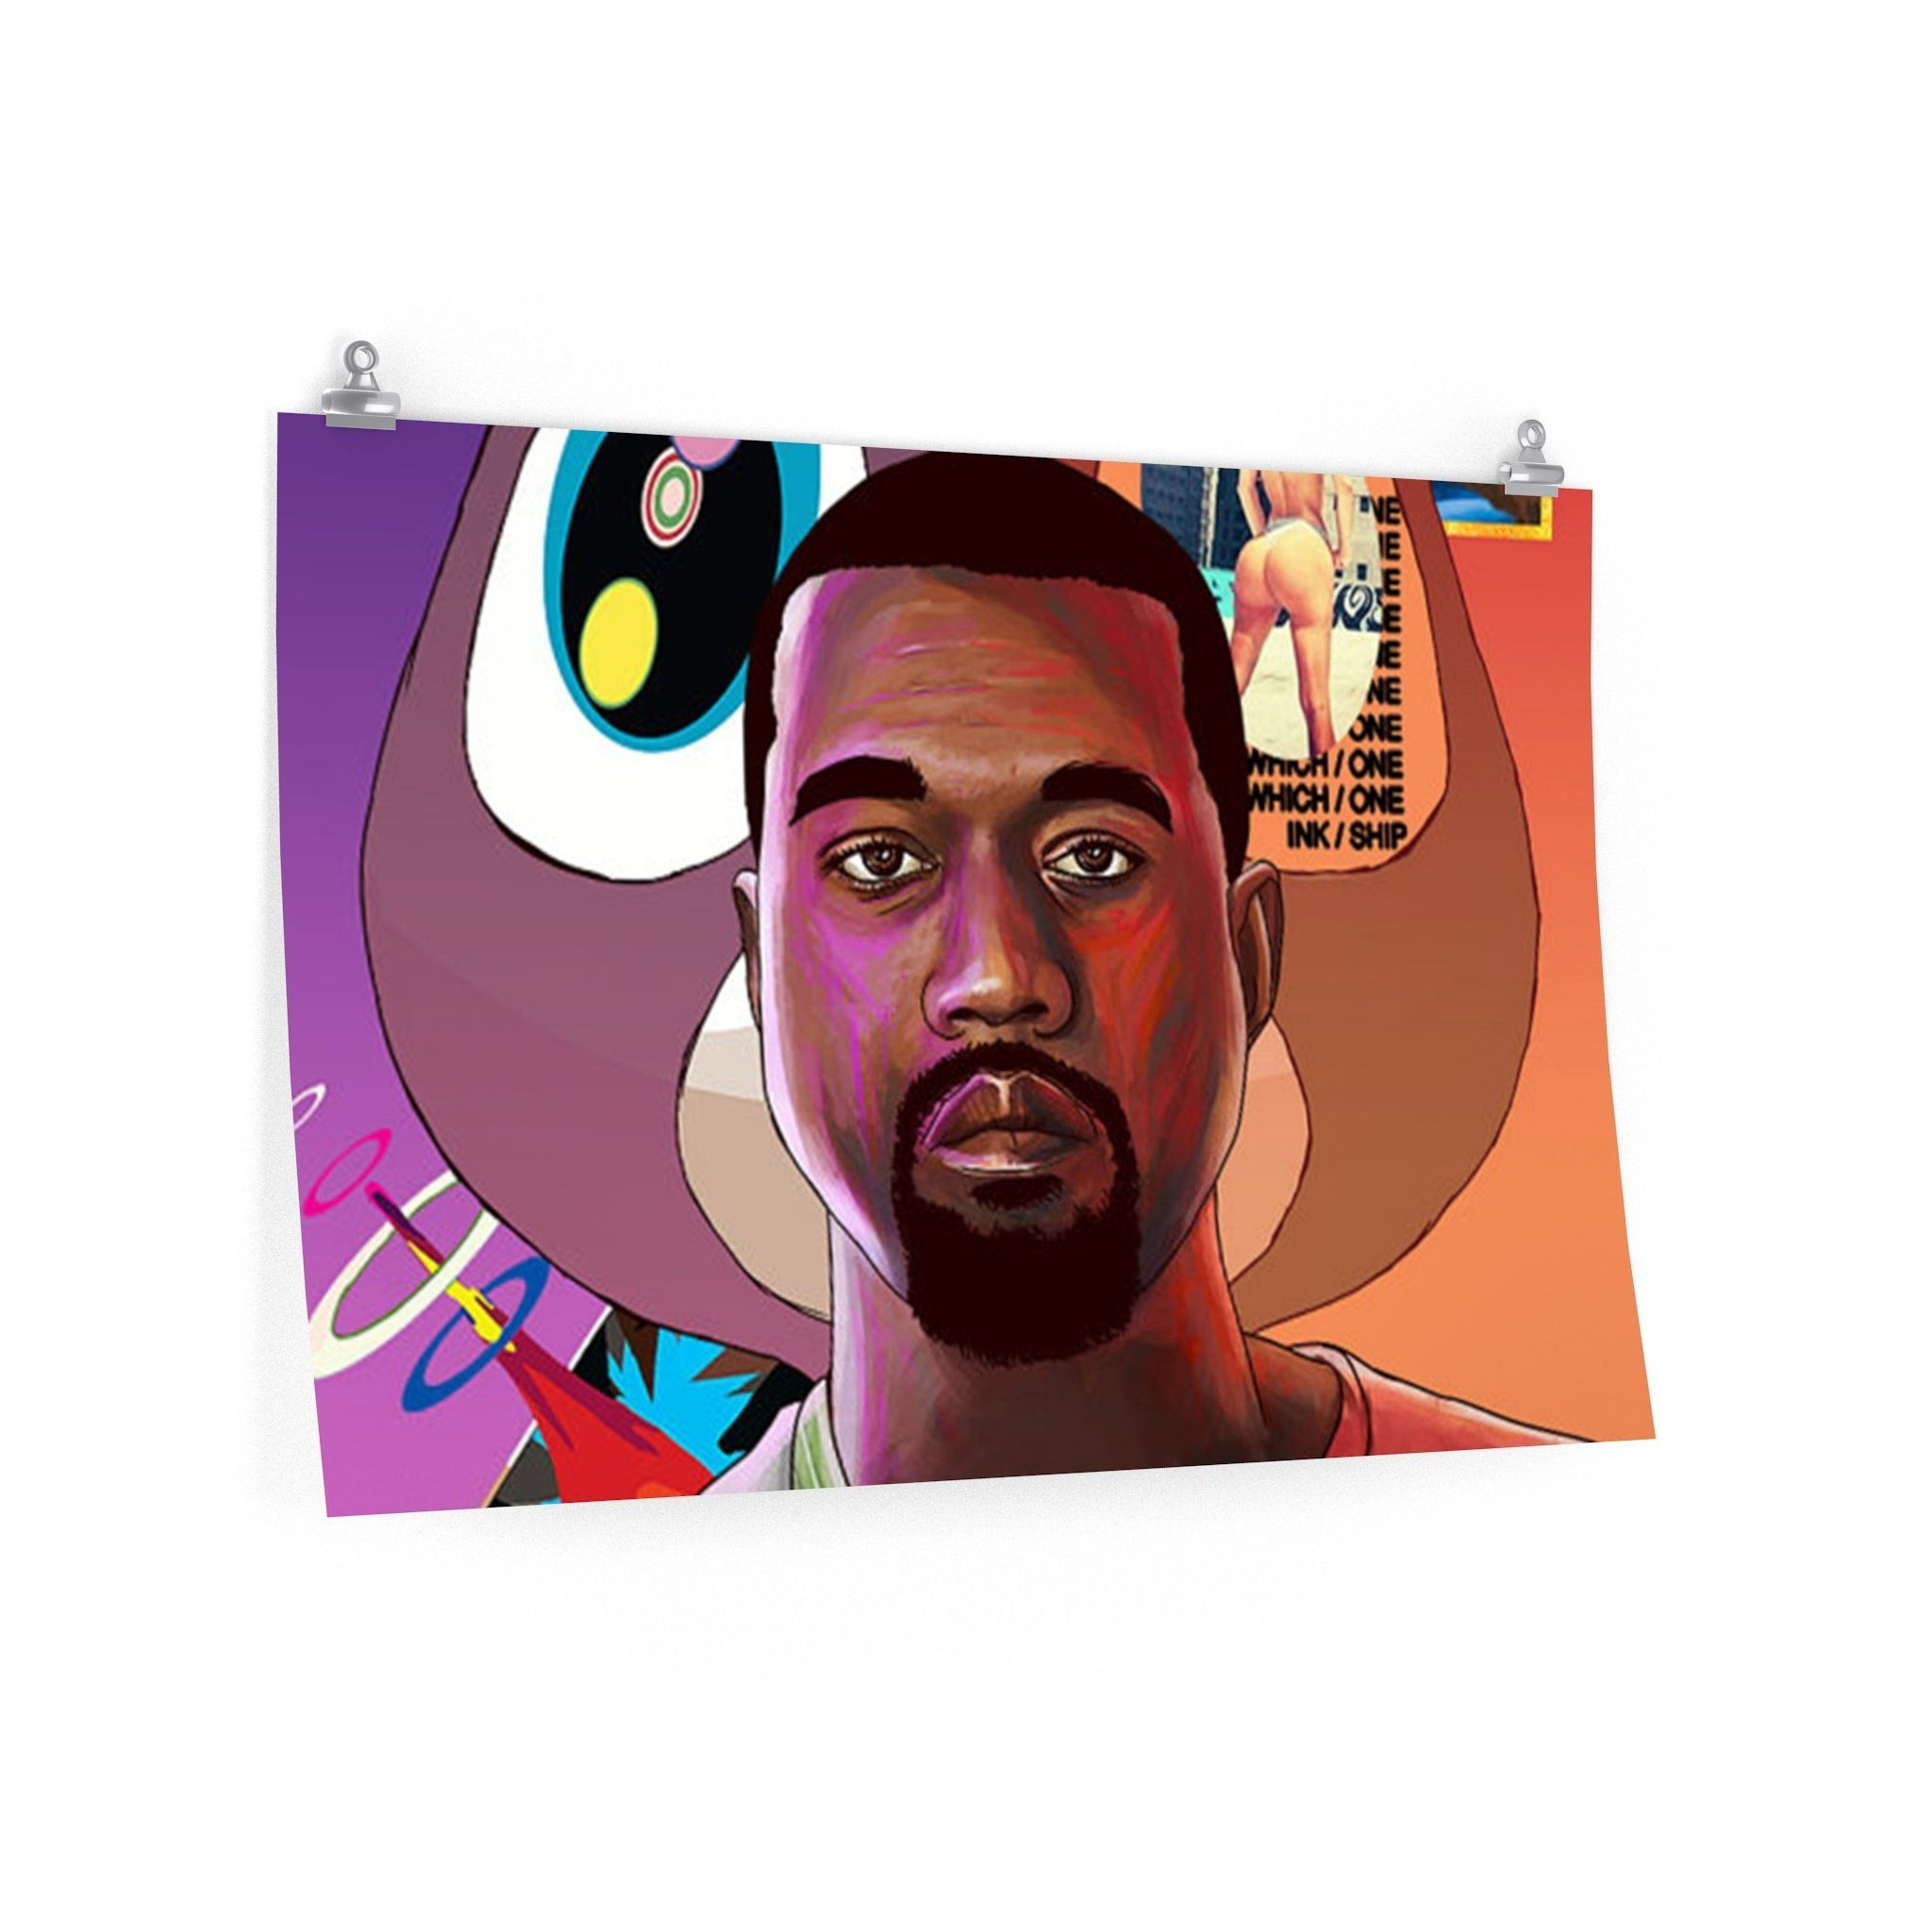 Kanye west poster kanye west and products